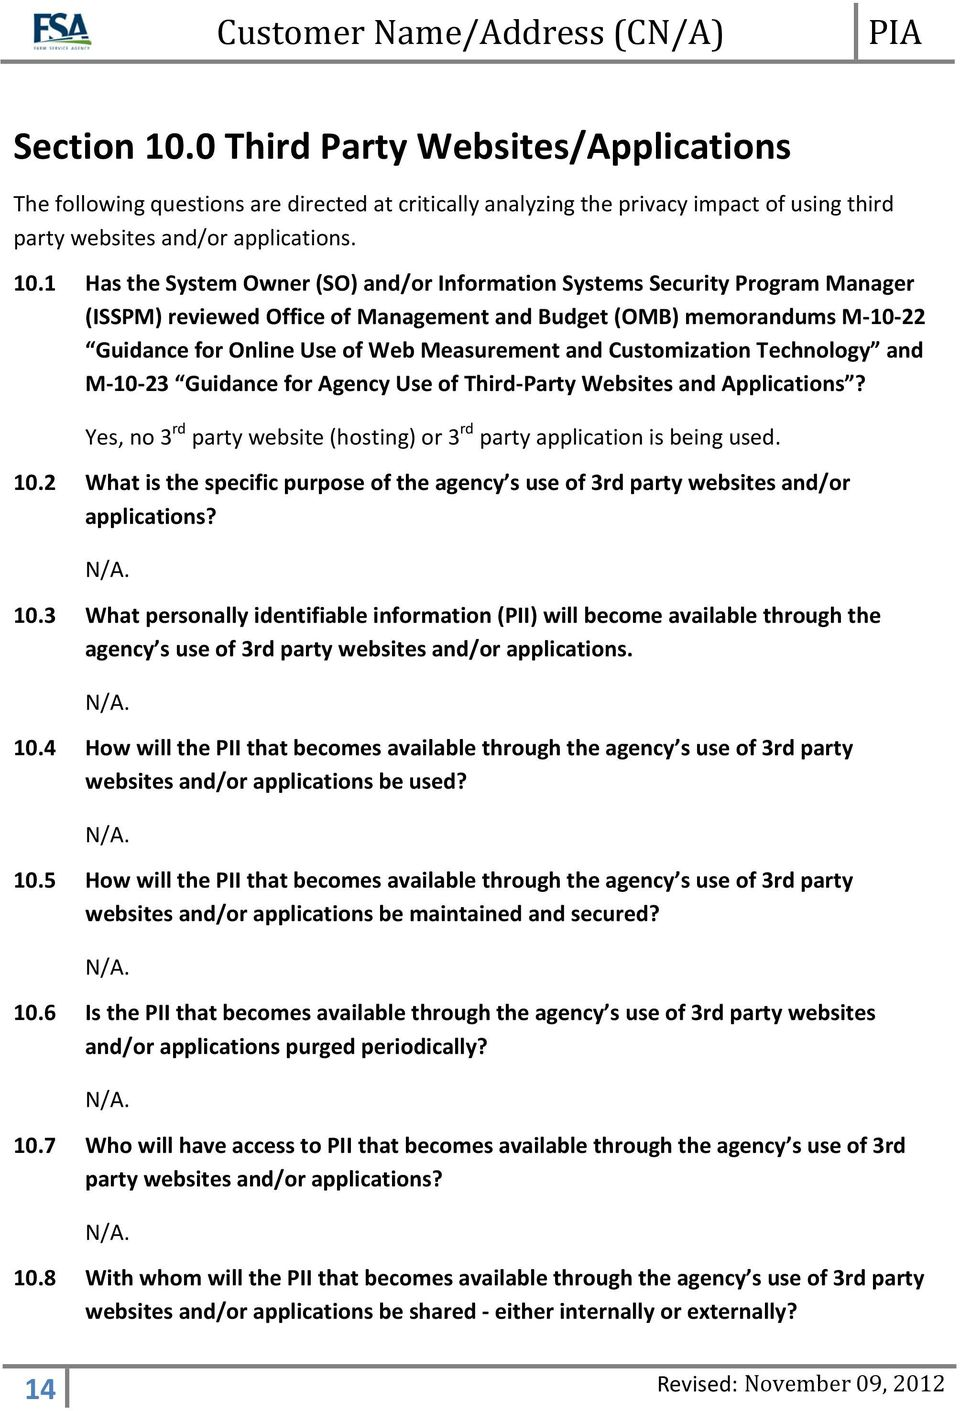 1 Has the System Owner (SO) and/or Information Systems Security Program Manager (ISSPM) reviewed Office of Management and Budget (OMB) memorandums M-10-22 Guidance for Online Use of Web Measurement